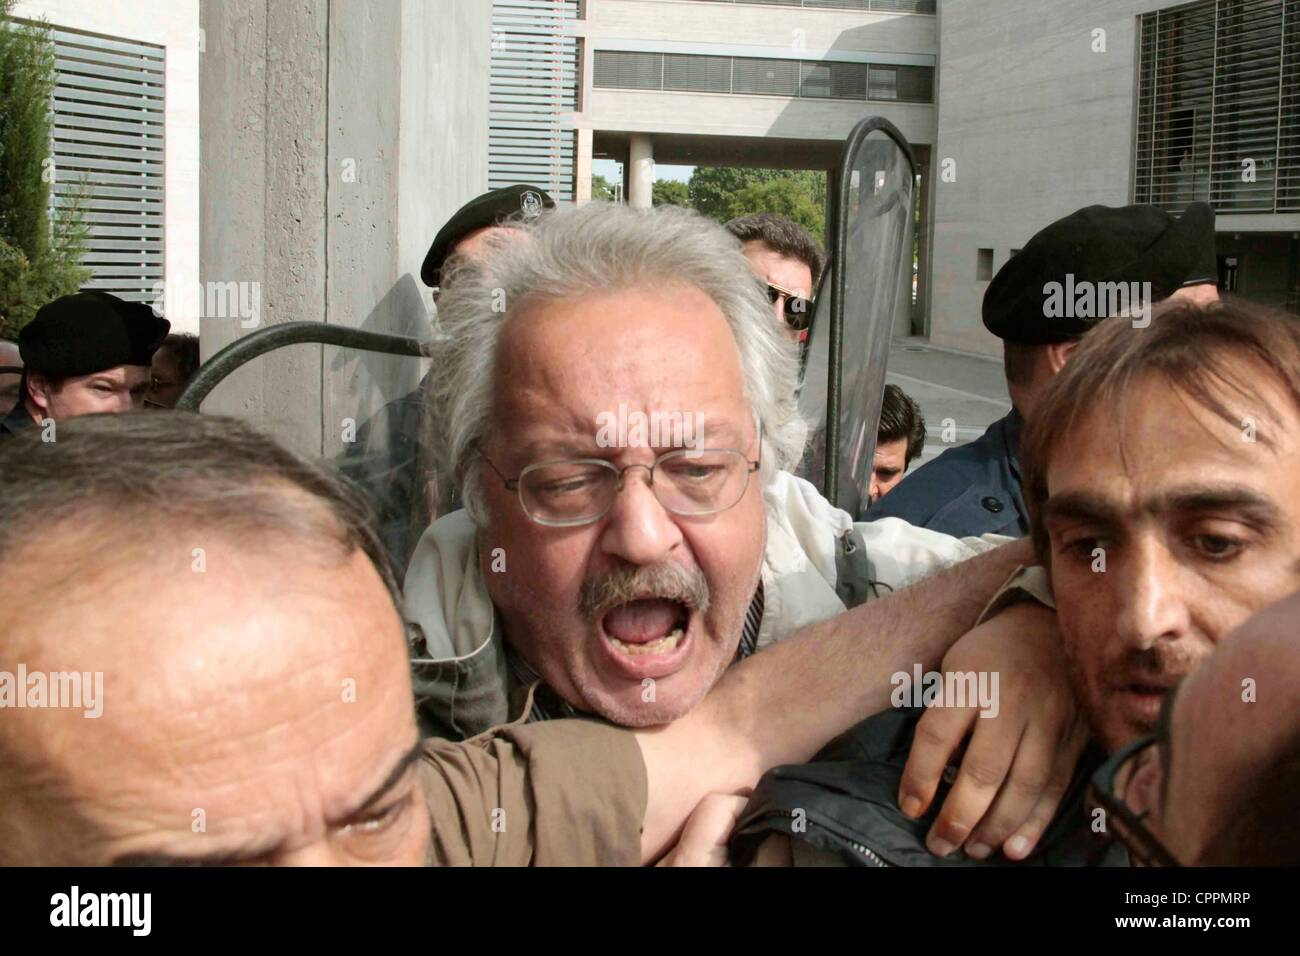 Thessaloniki, Greece, 30th May 2012 - Municipal mechanics protest outside Thessalonika City hall over plans to privatise - Stock Image